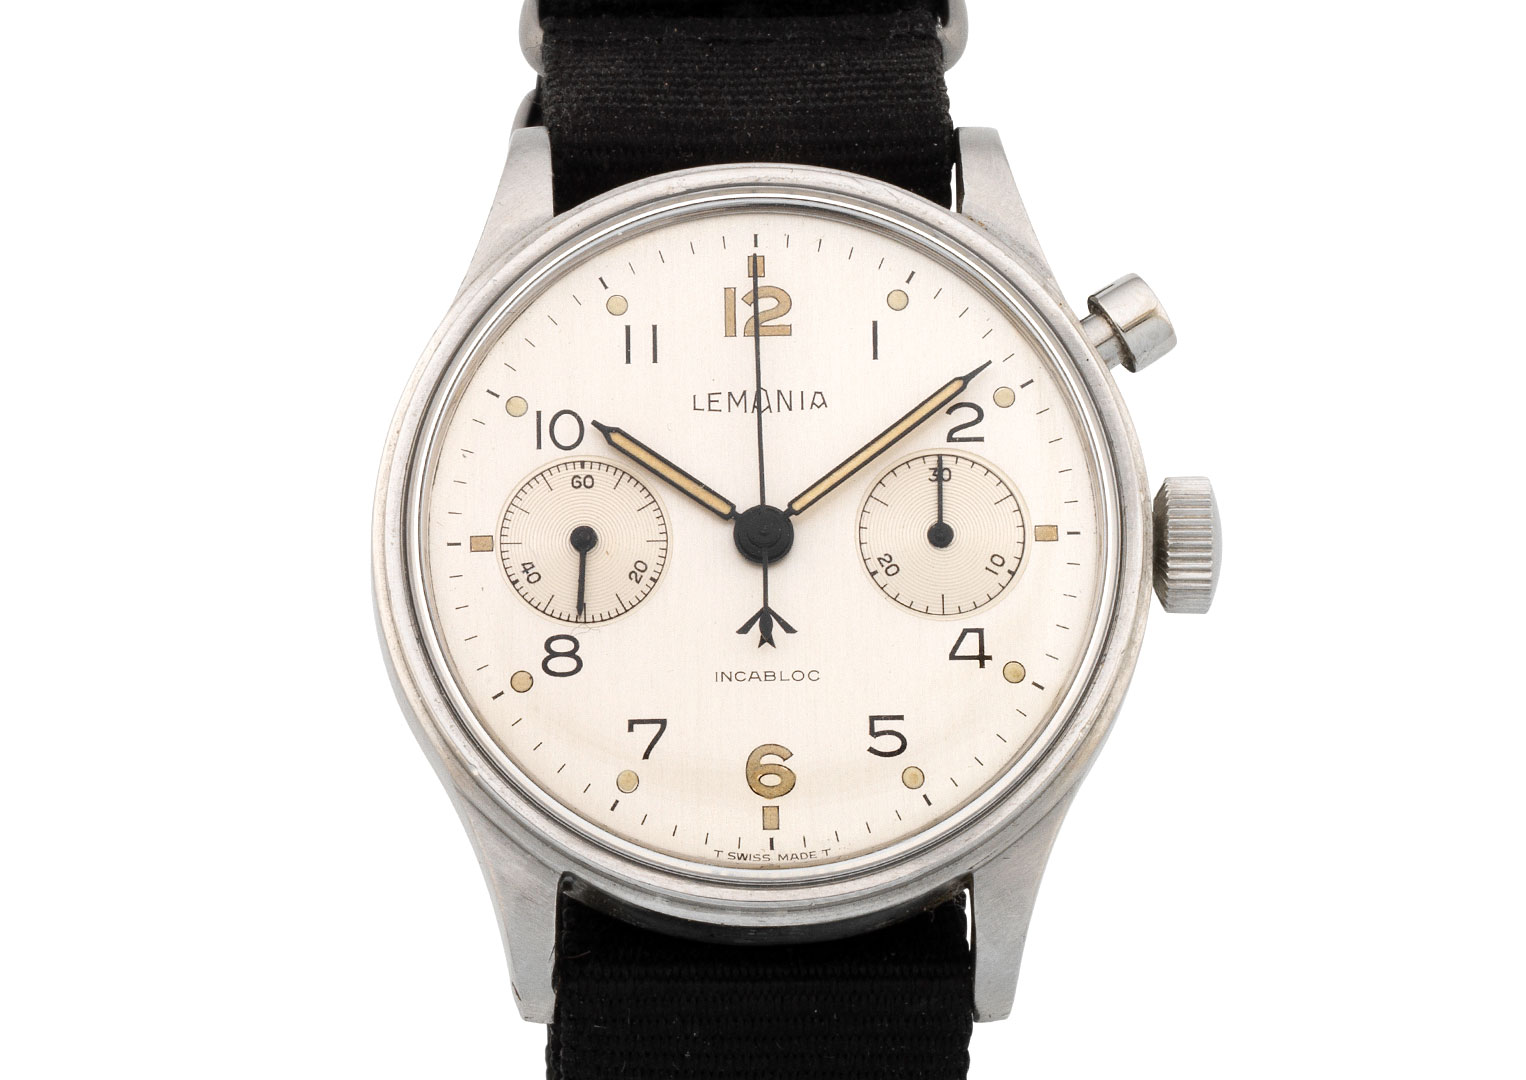 A Lemania military-issue chronograph, circa 1960, that sold for £2,125 at Bonhams in 2018